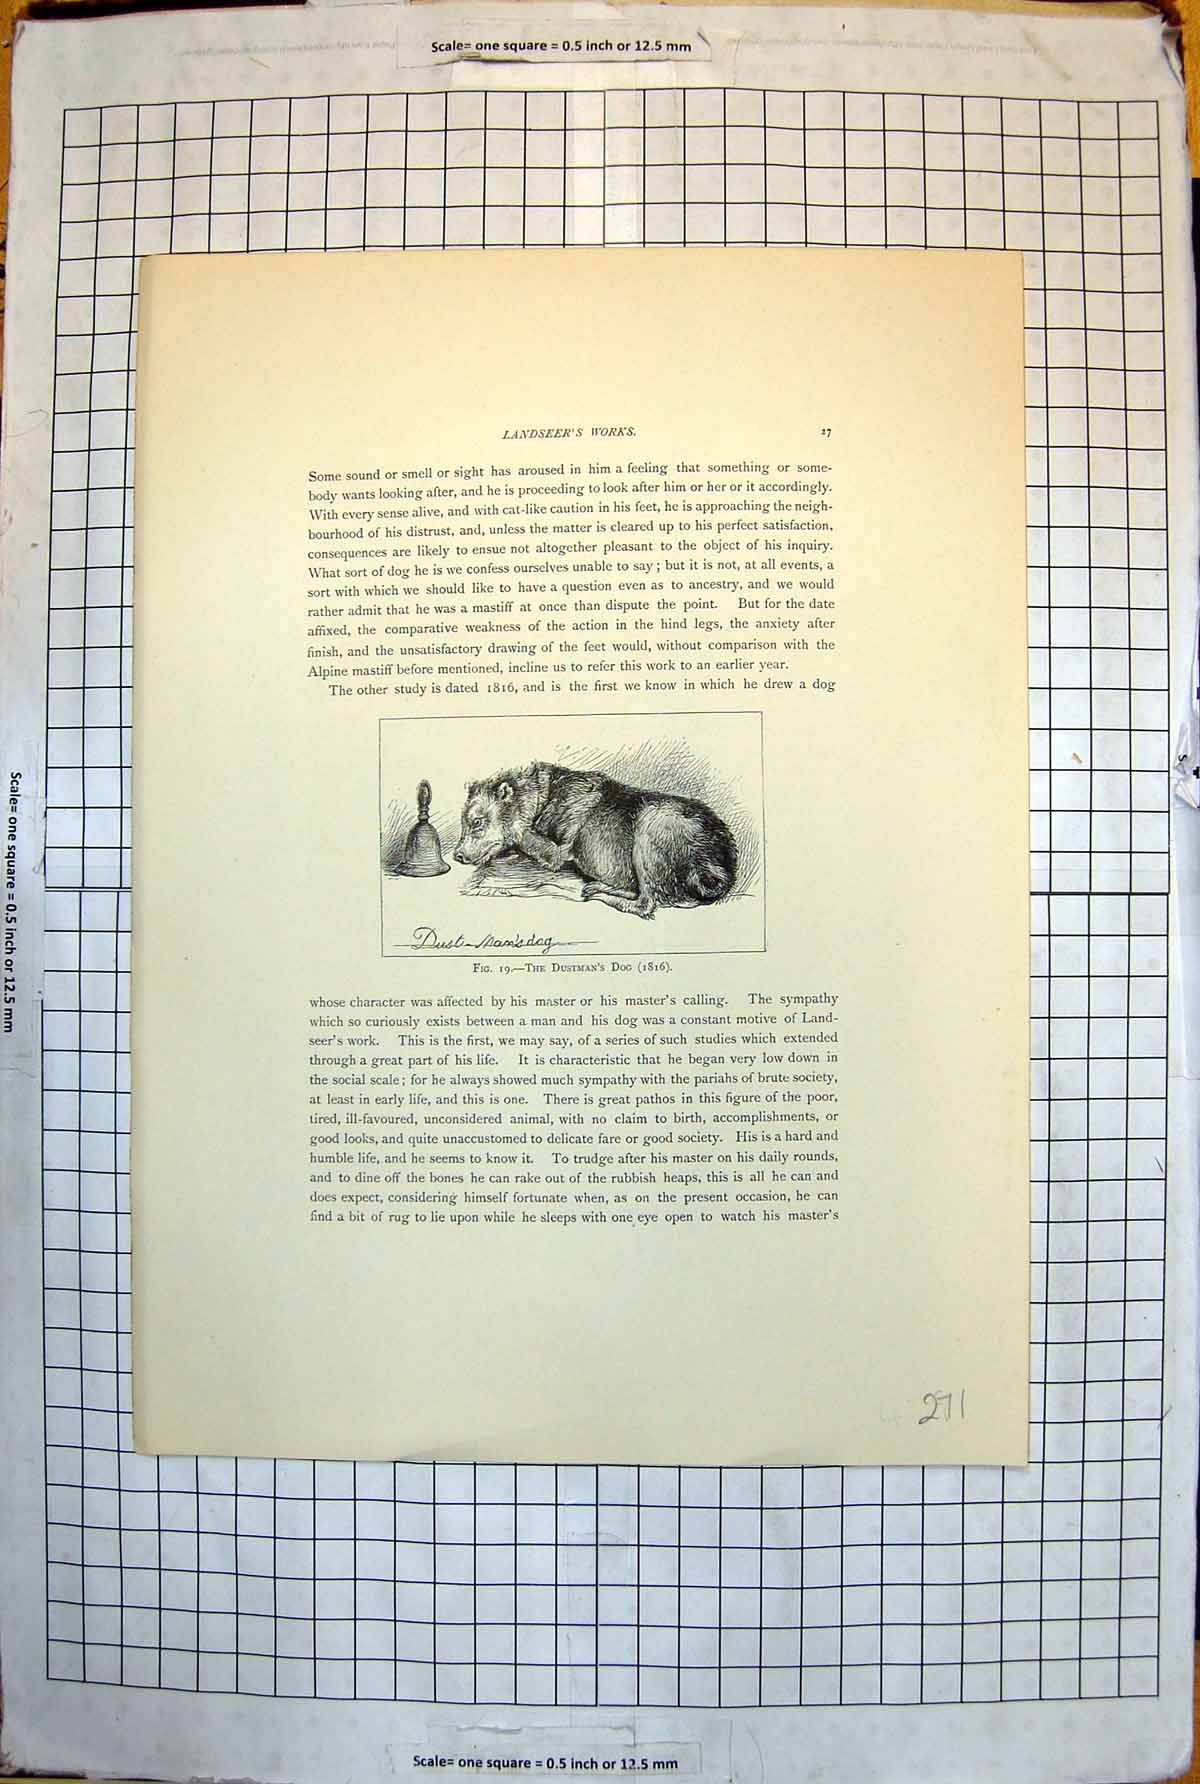 [Print The Dustman'S Dog From Landseer Work 1816 Bell Resting Tail 271J7161897 Old Original]